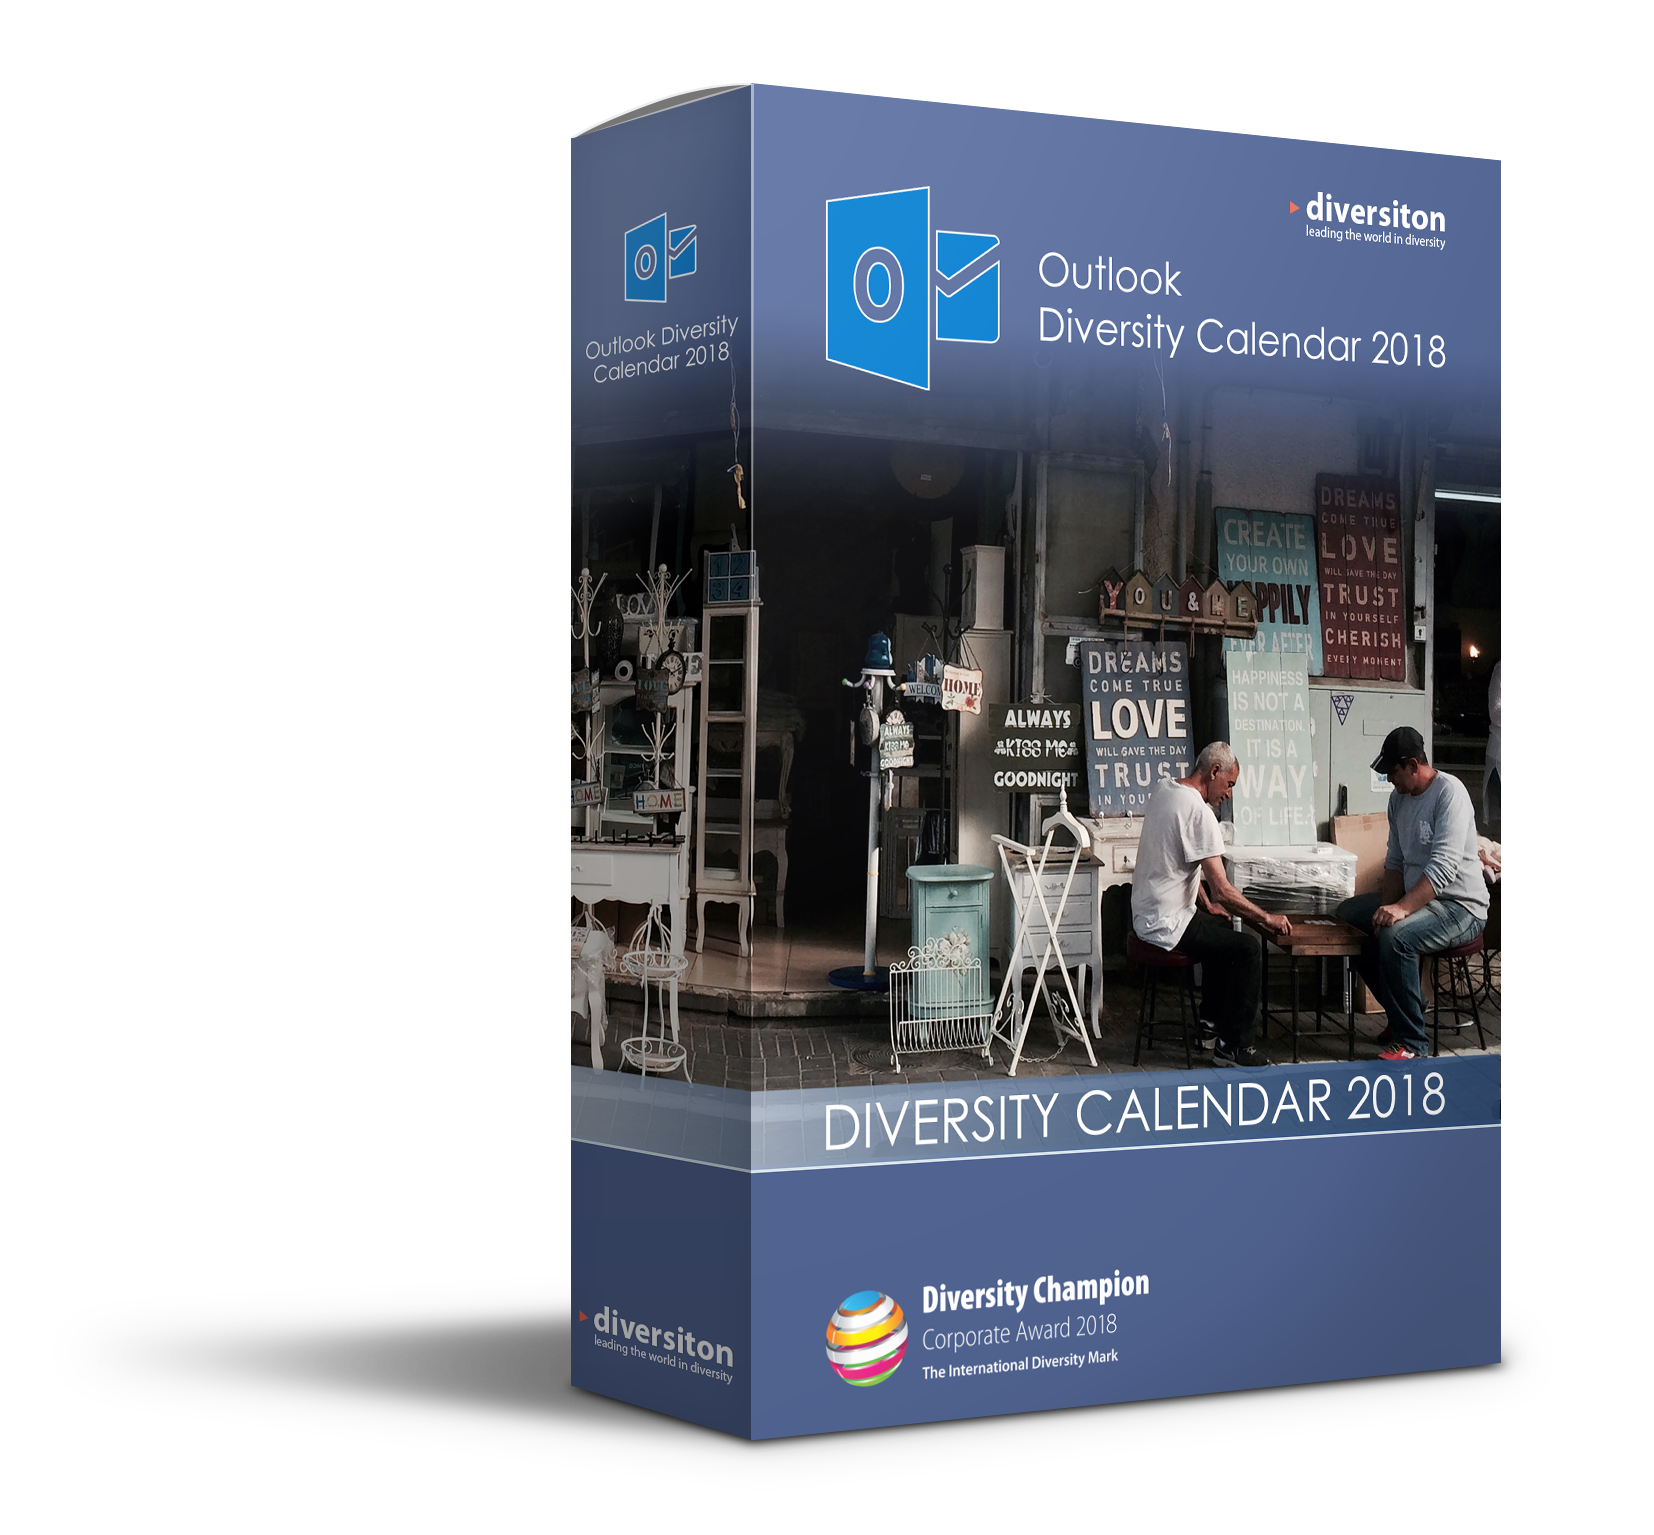 Outlook-Diversity-Calendar-2018 - transparent